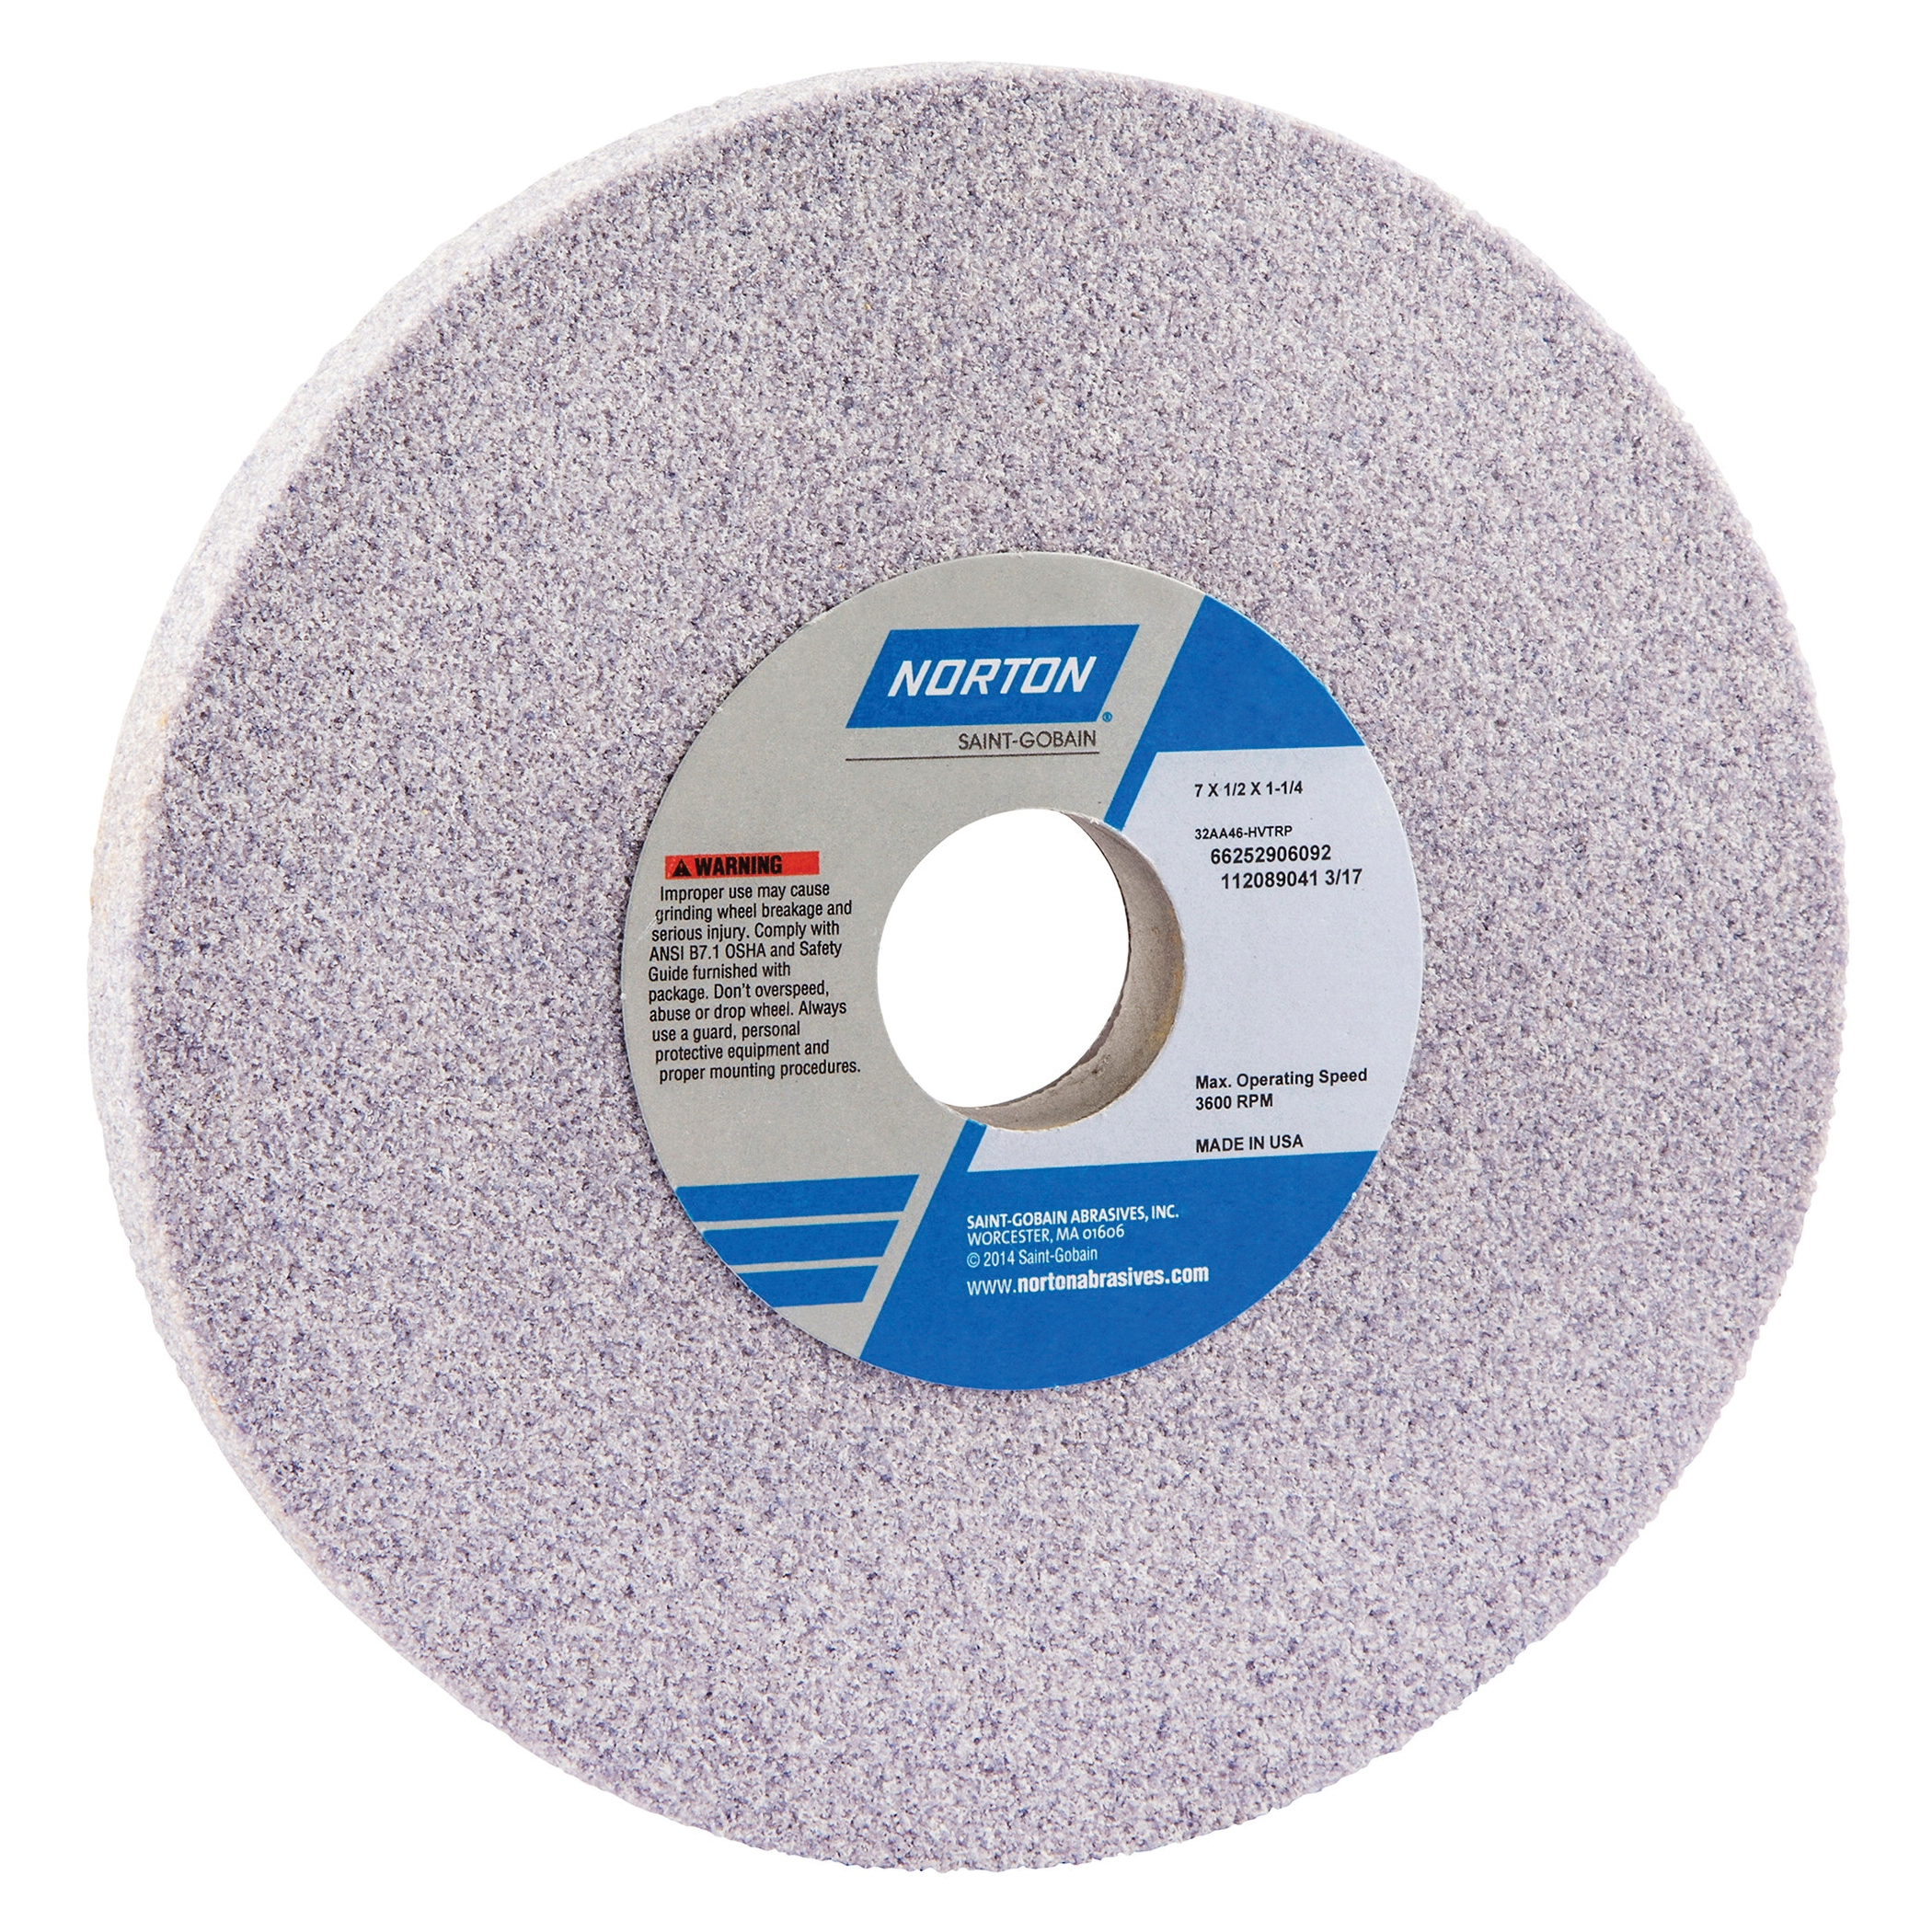 Norton® 66252906092 32AA Straight Toolroom Wheel, 7 in Dia x 1/2 in THK, 1-1/4 in Center Hole, 46 Grit, Aluminum Oxide Abrasive